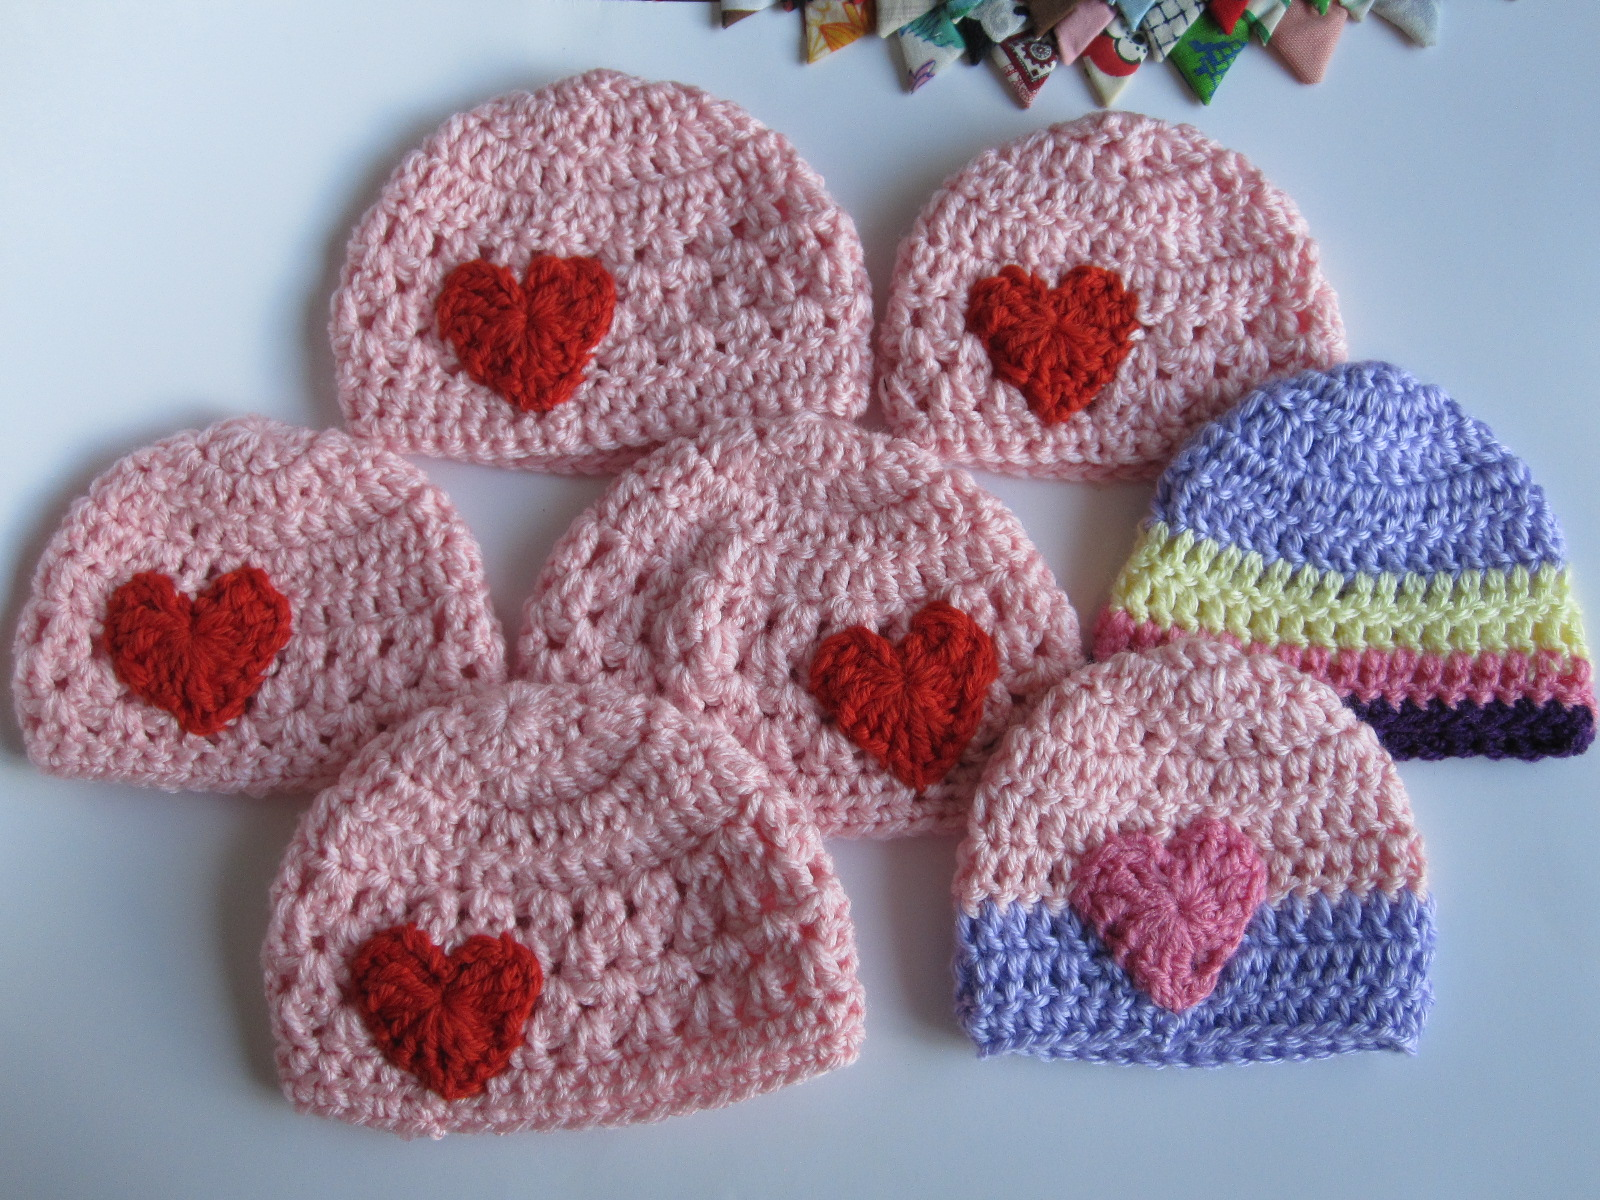 Lively Crochet - Rhythmic Youth: Preemie Hat Tutorial